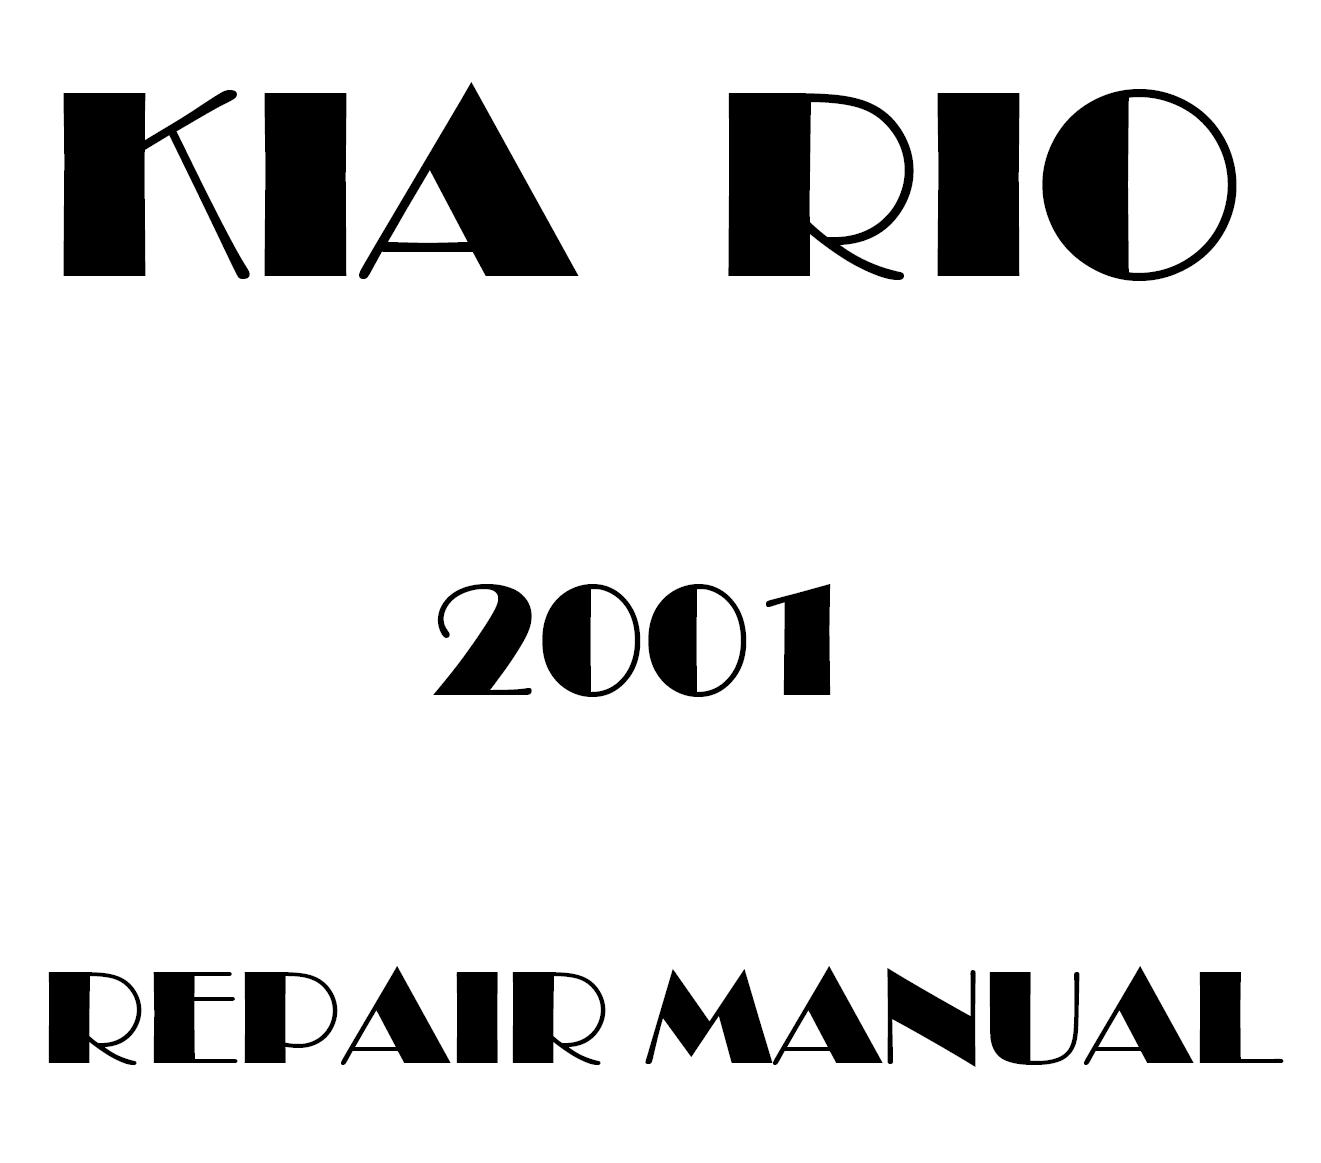 2001 Kia Rio repair manual